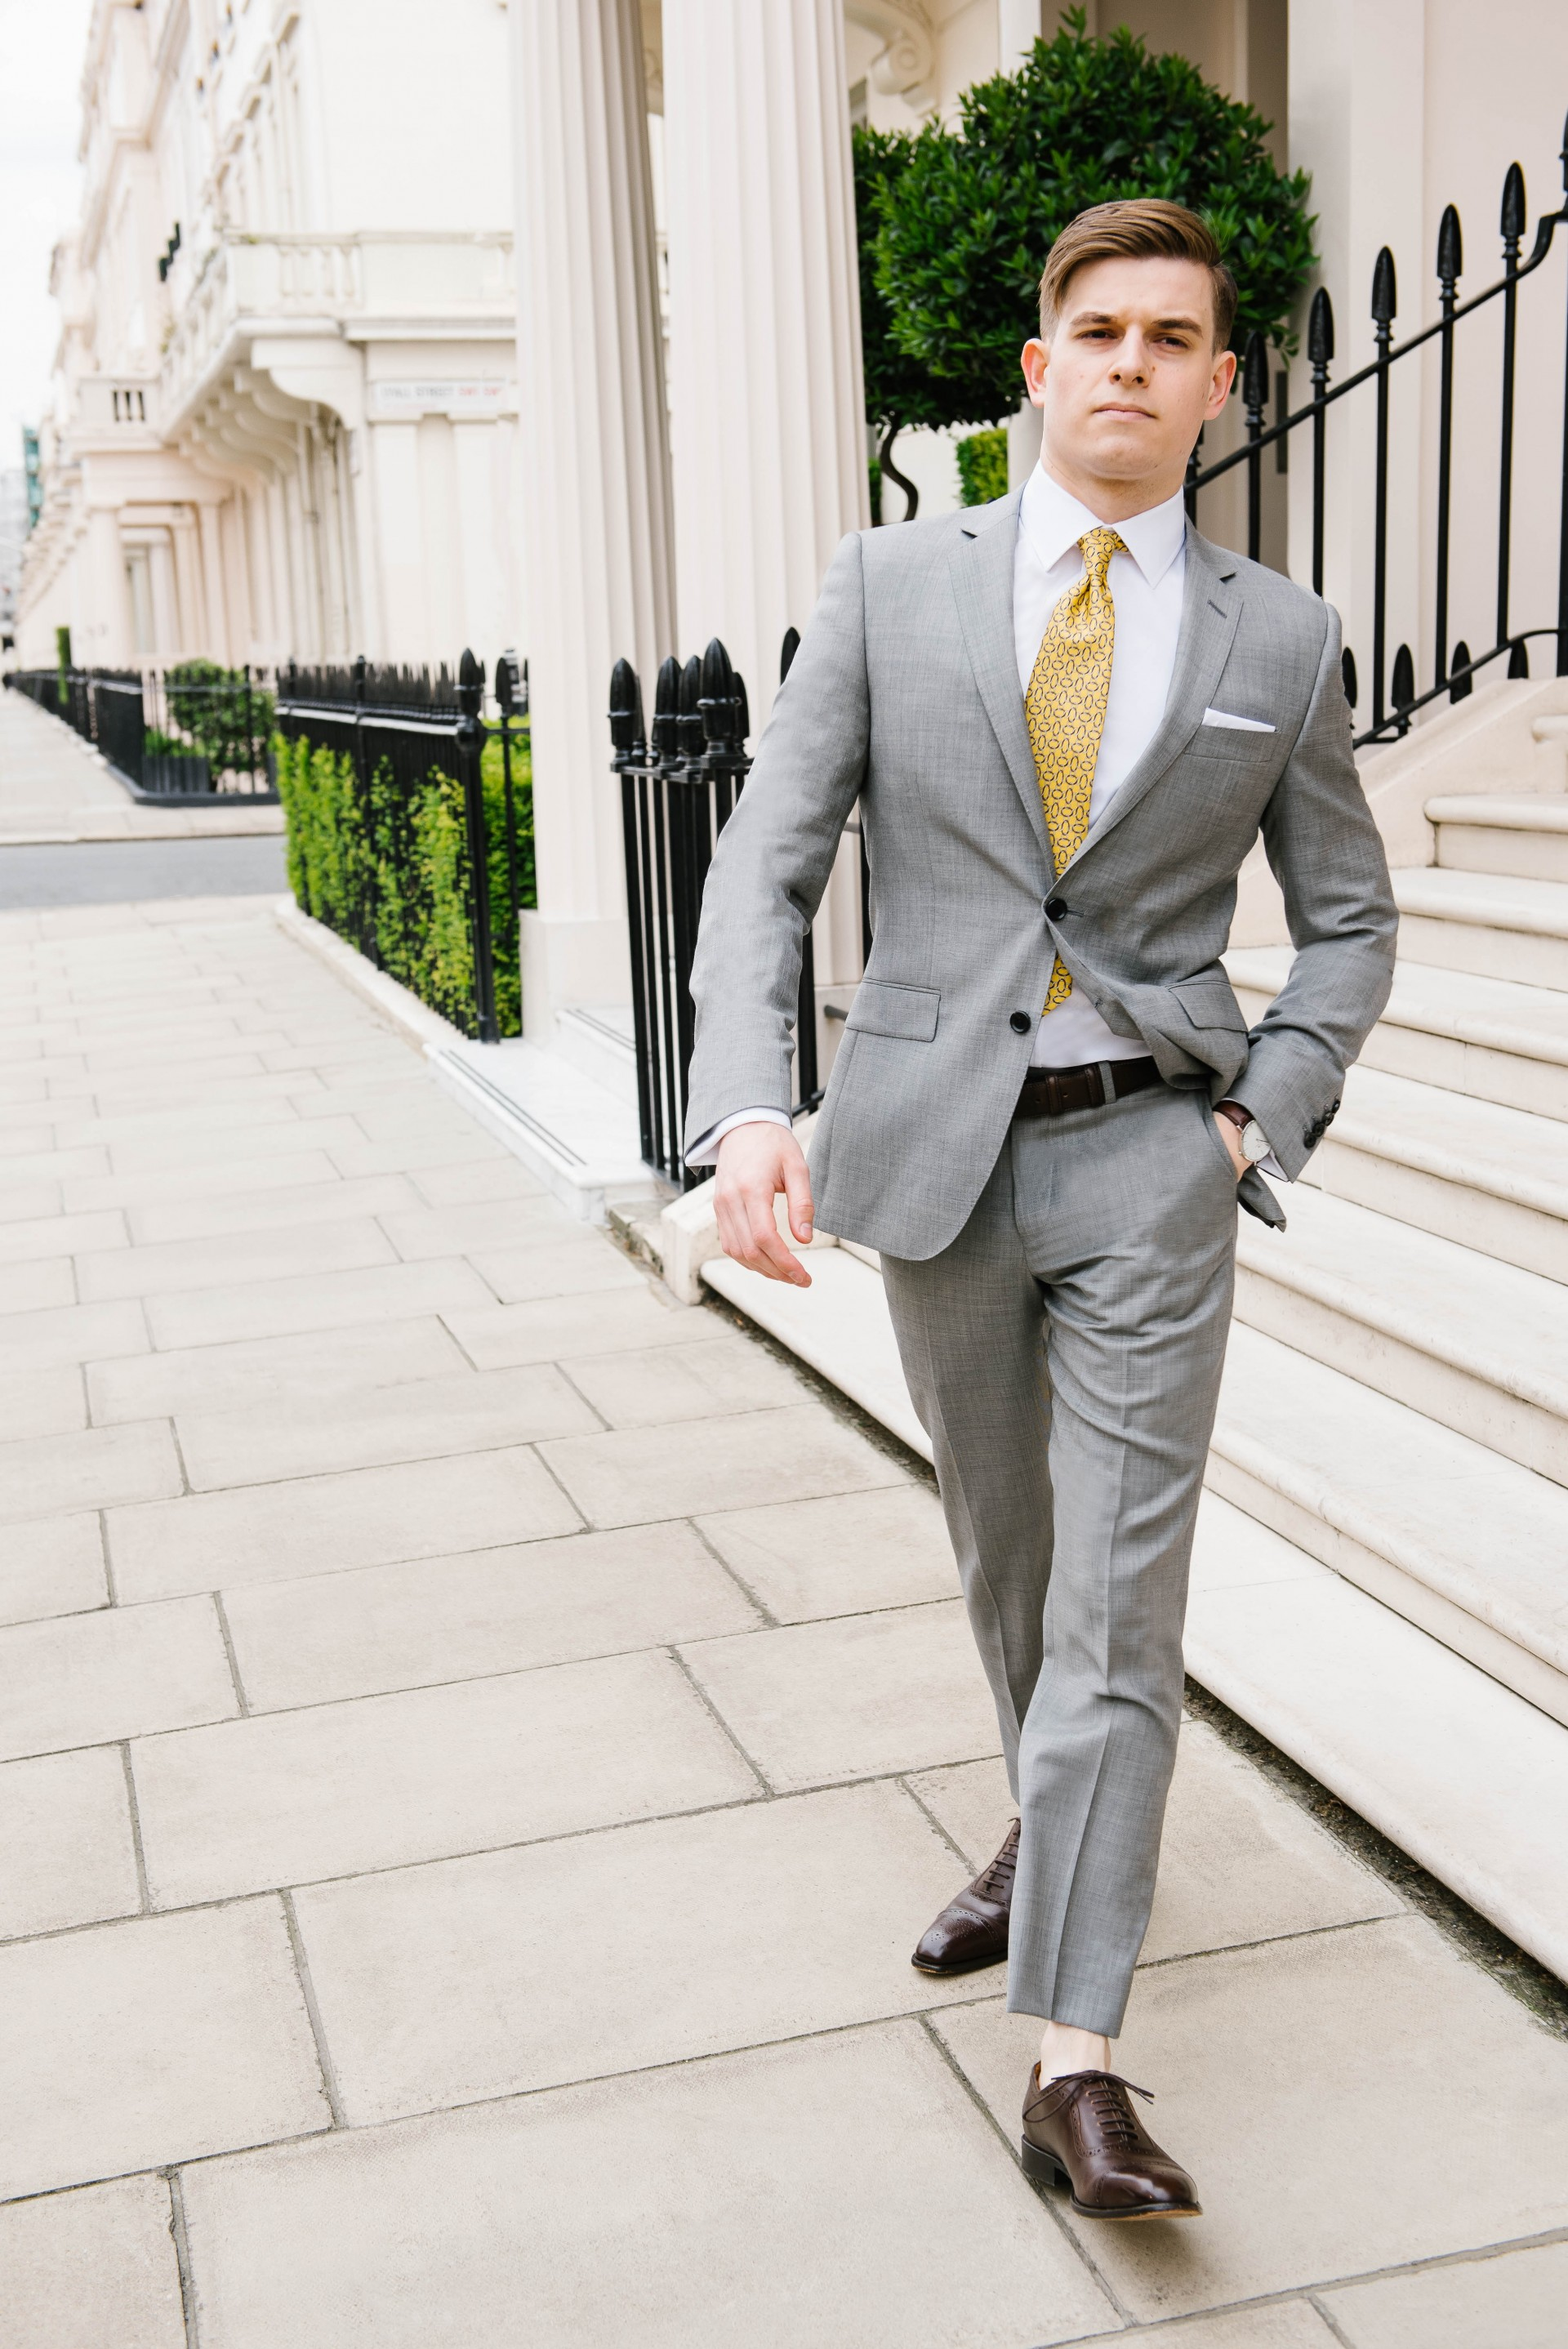 Men's Suit Style - Yellow Tie & Grey Suit 3